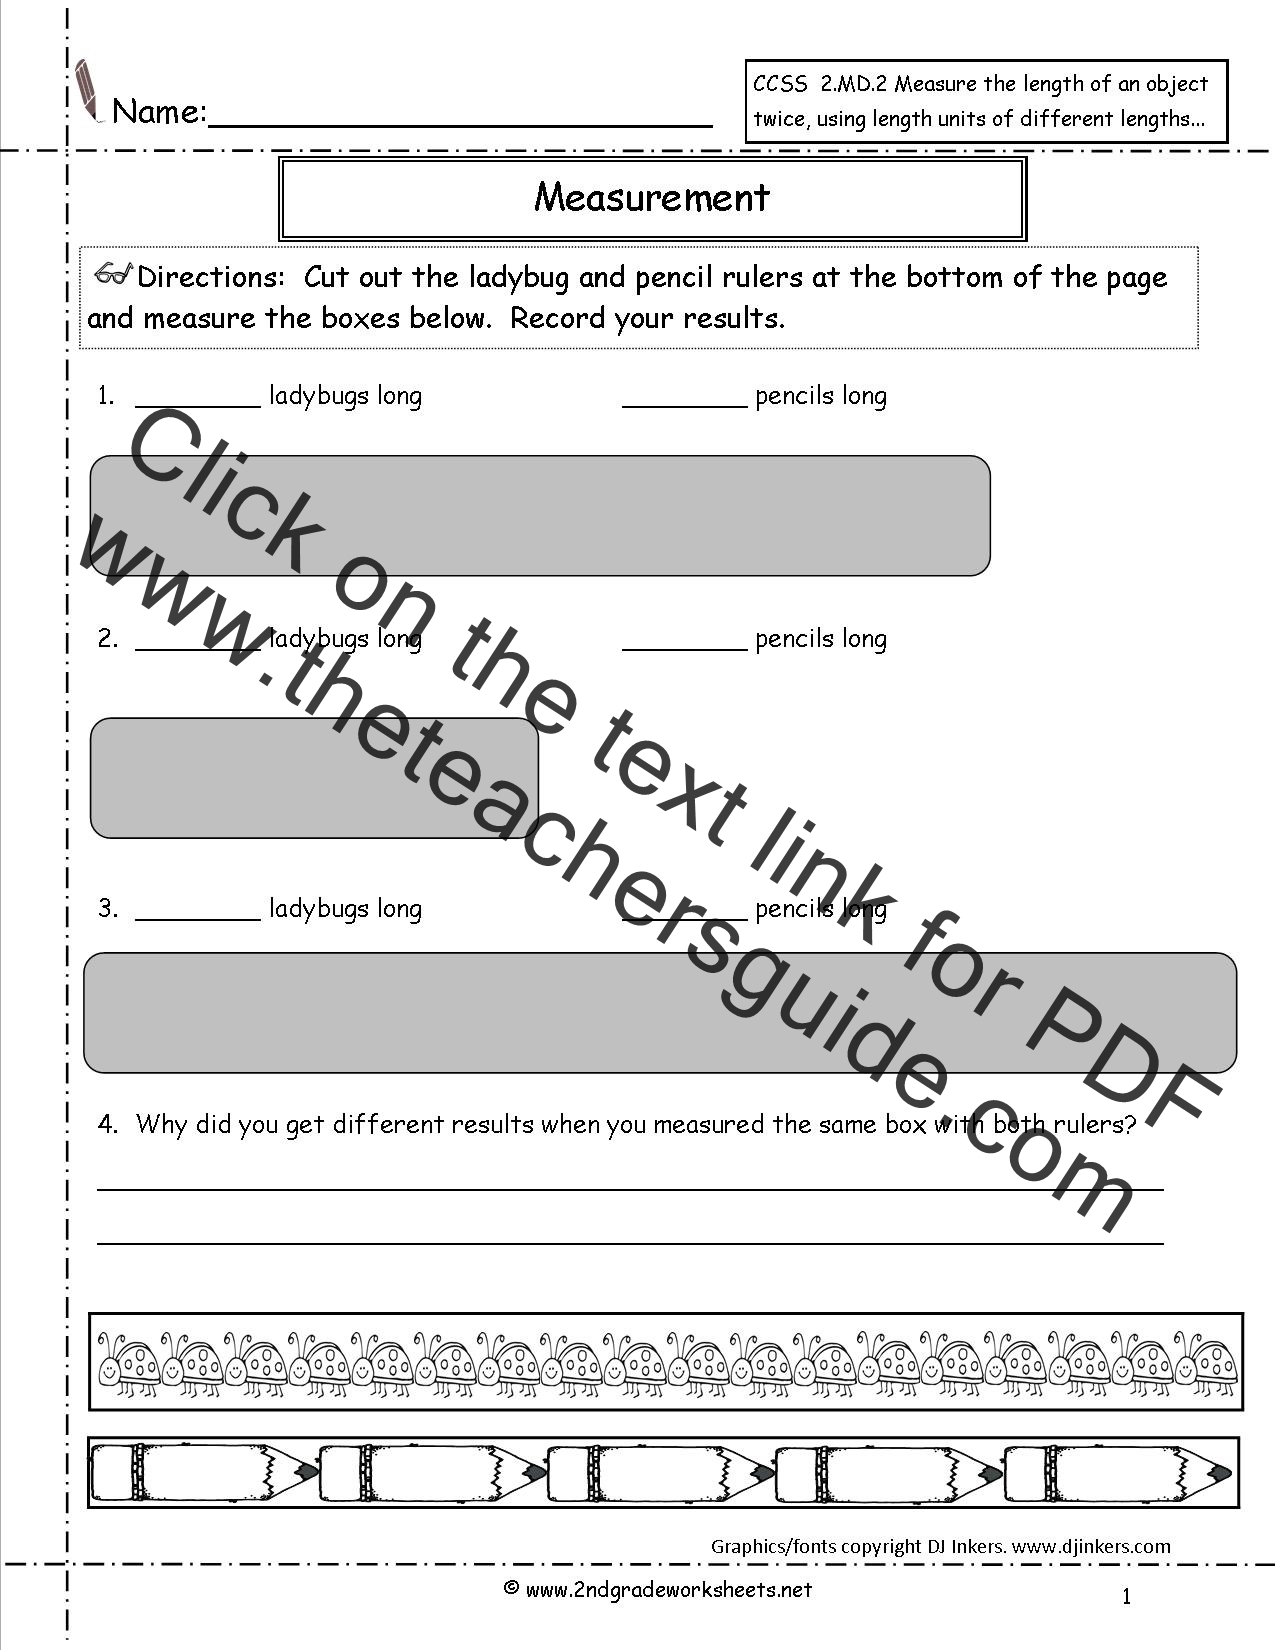 Worksheets Reading A Tape Measure Worksheet ccss 2 md worksheets measuring and estimating lengths worksheet